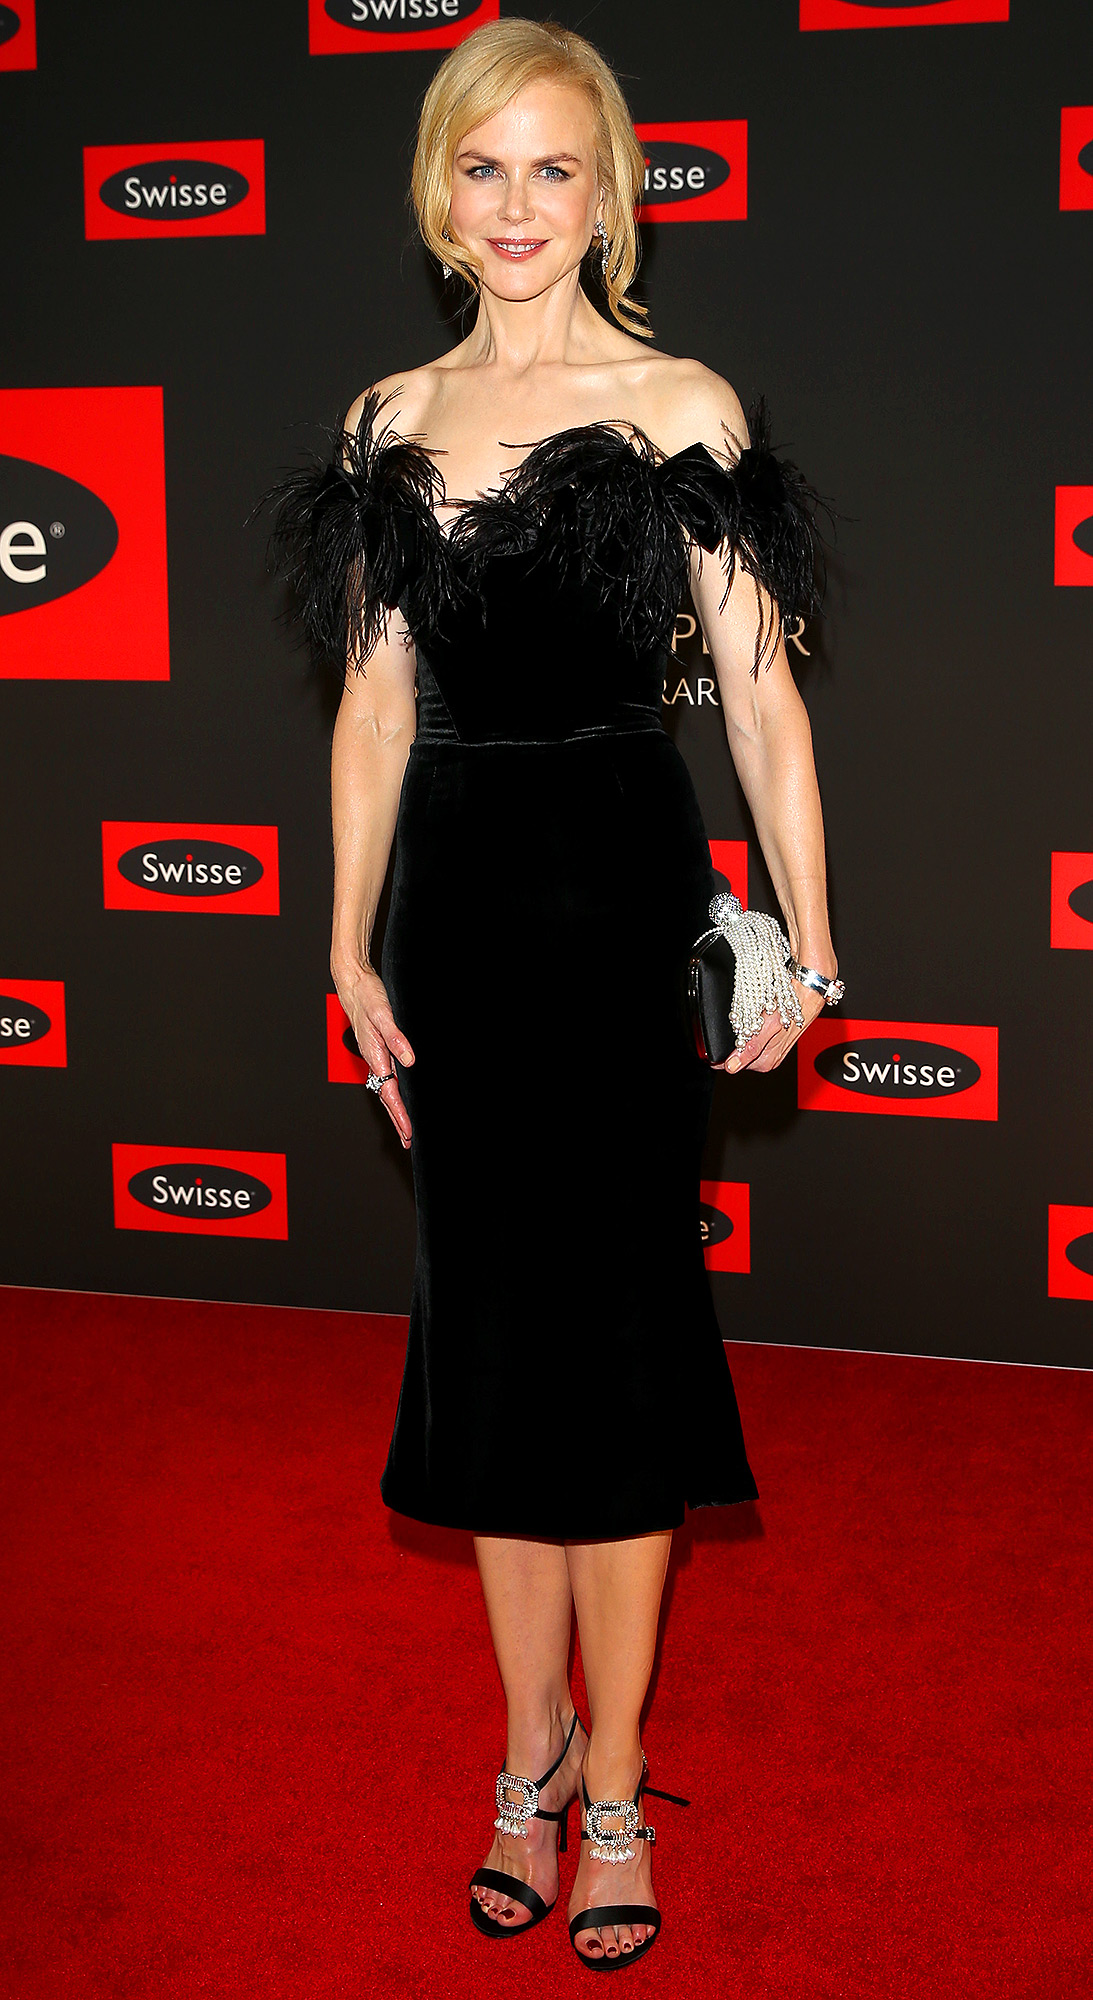 Nicole Kidman arrives at an event for Swisse and Ferrari in Melbourne